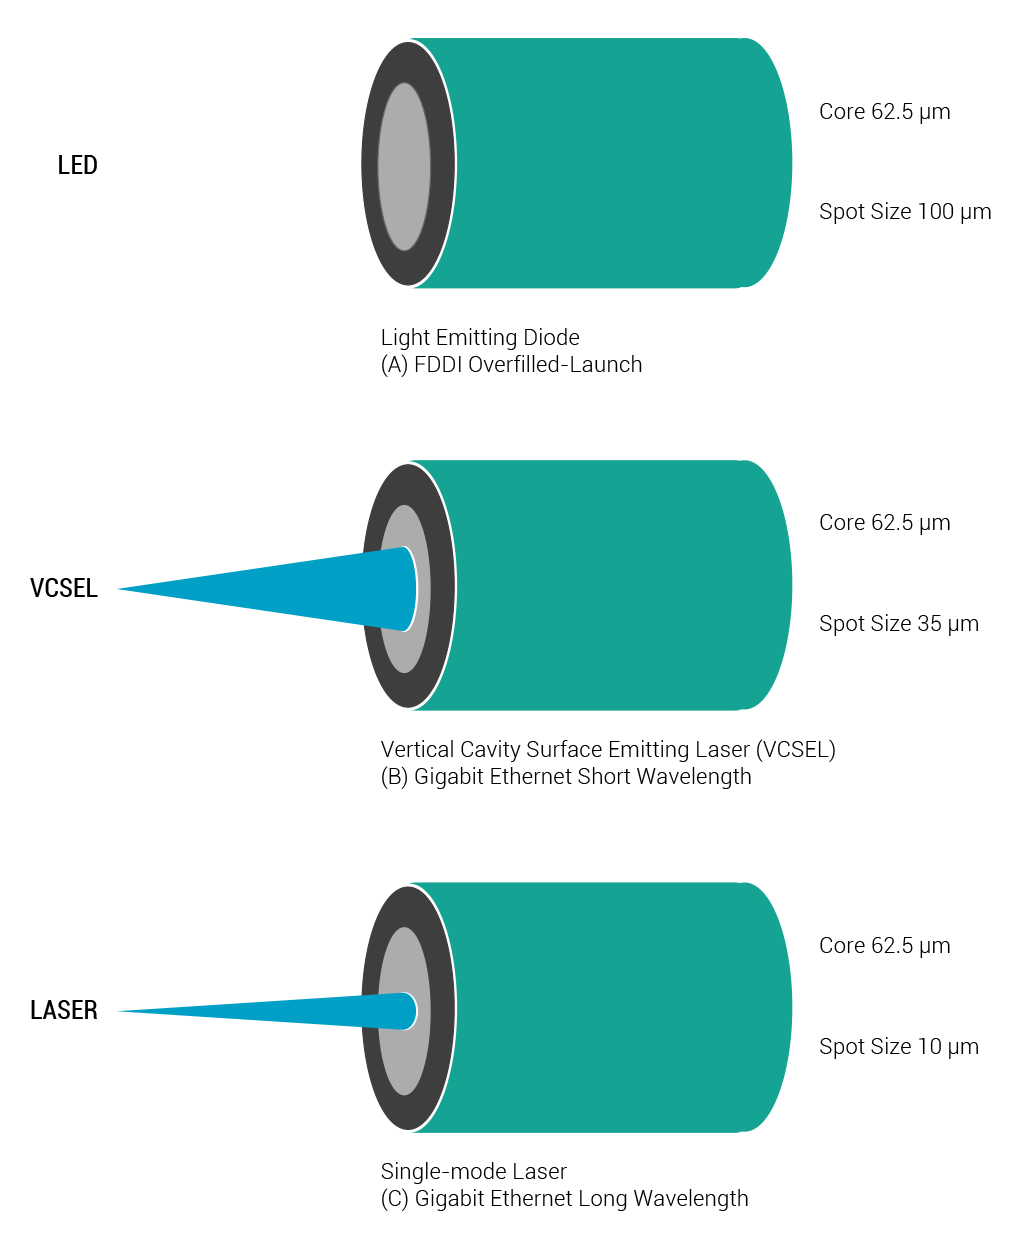 Laser vs LED light power source for fiber optic patch cables